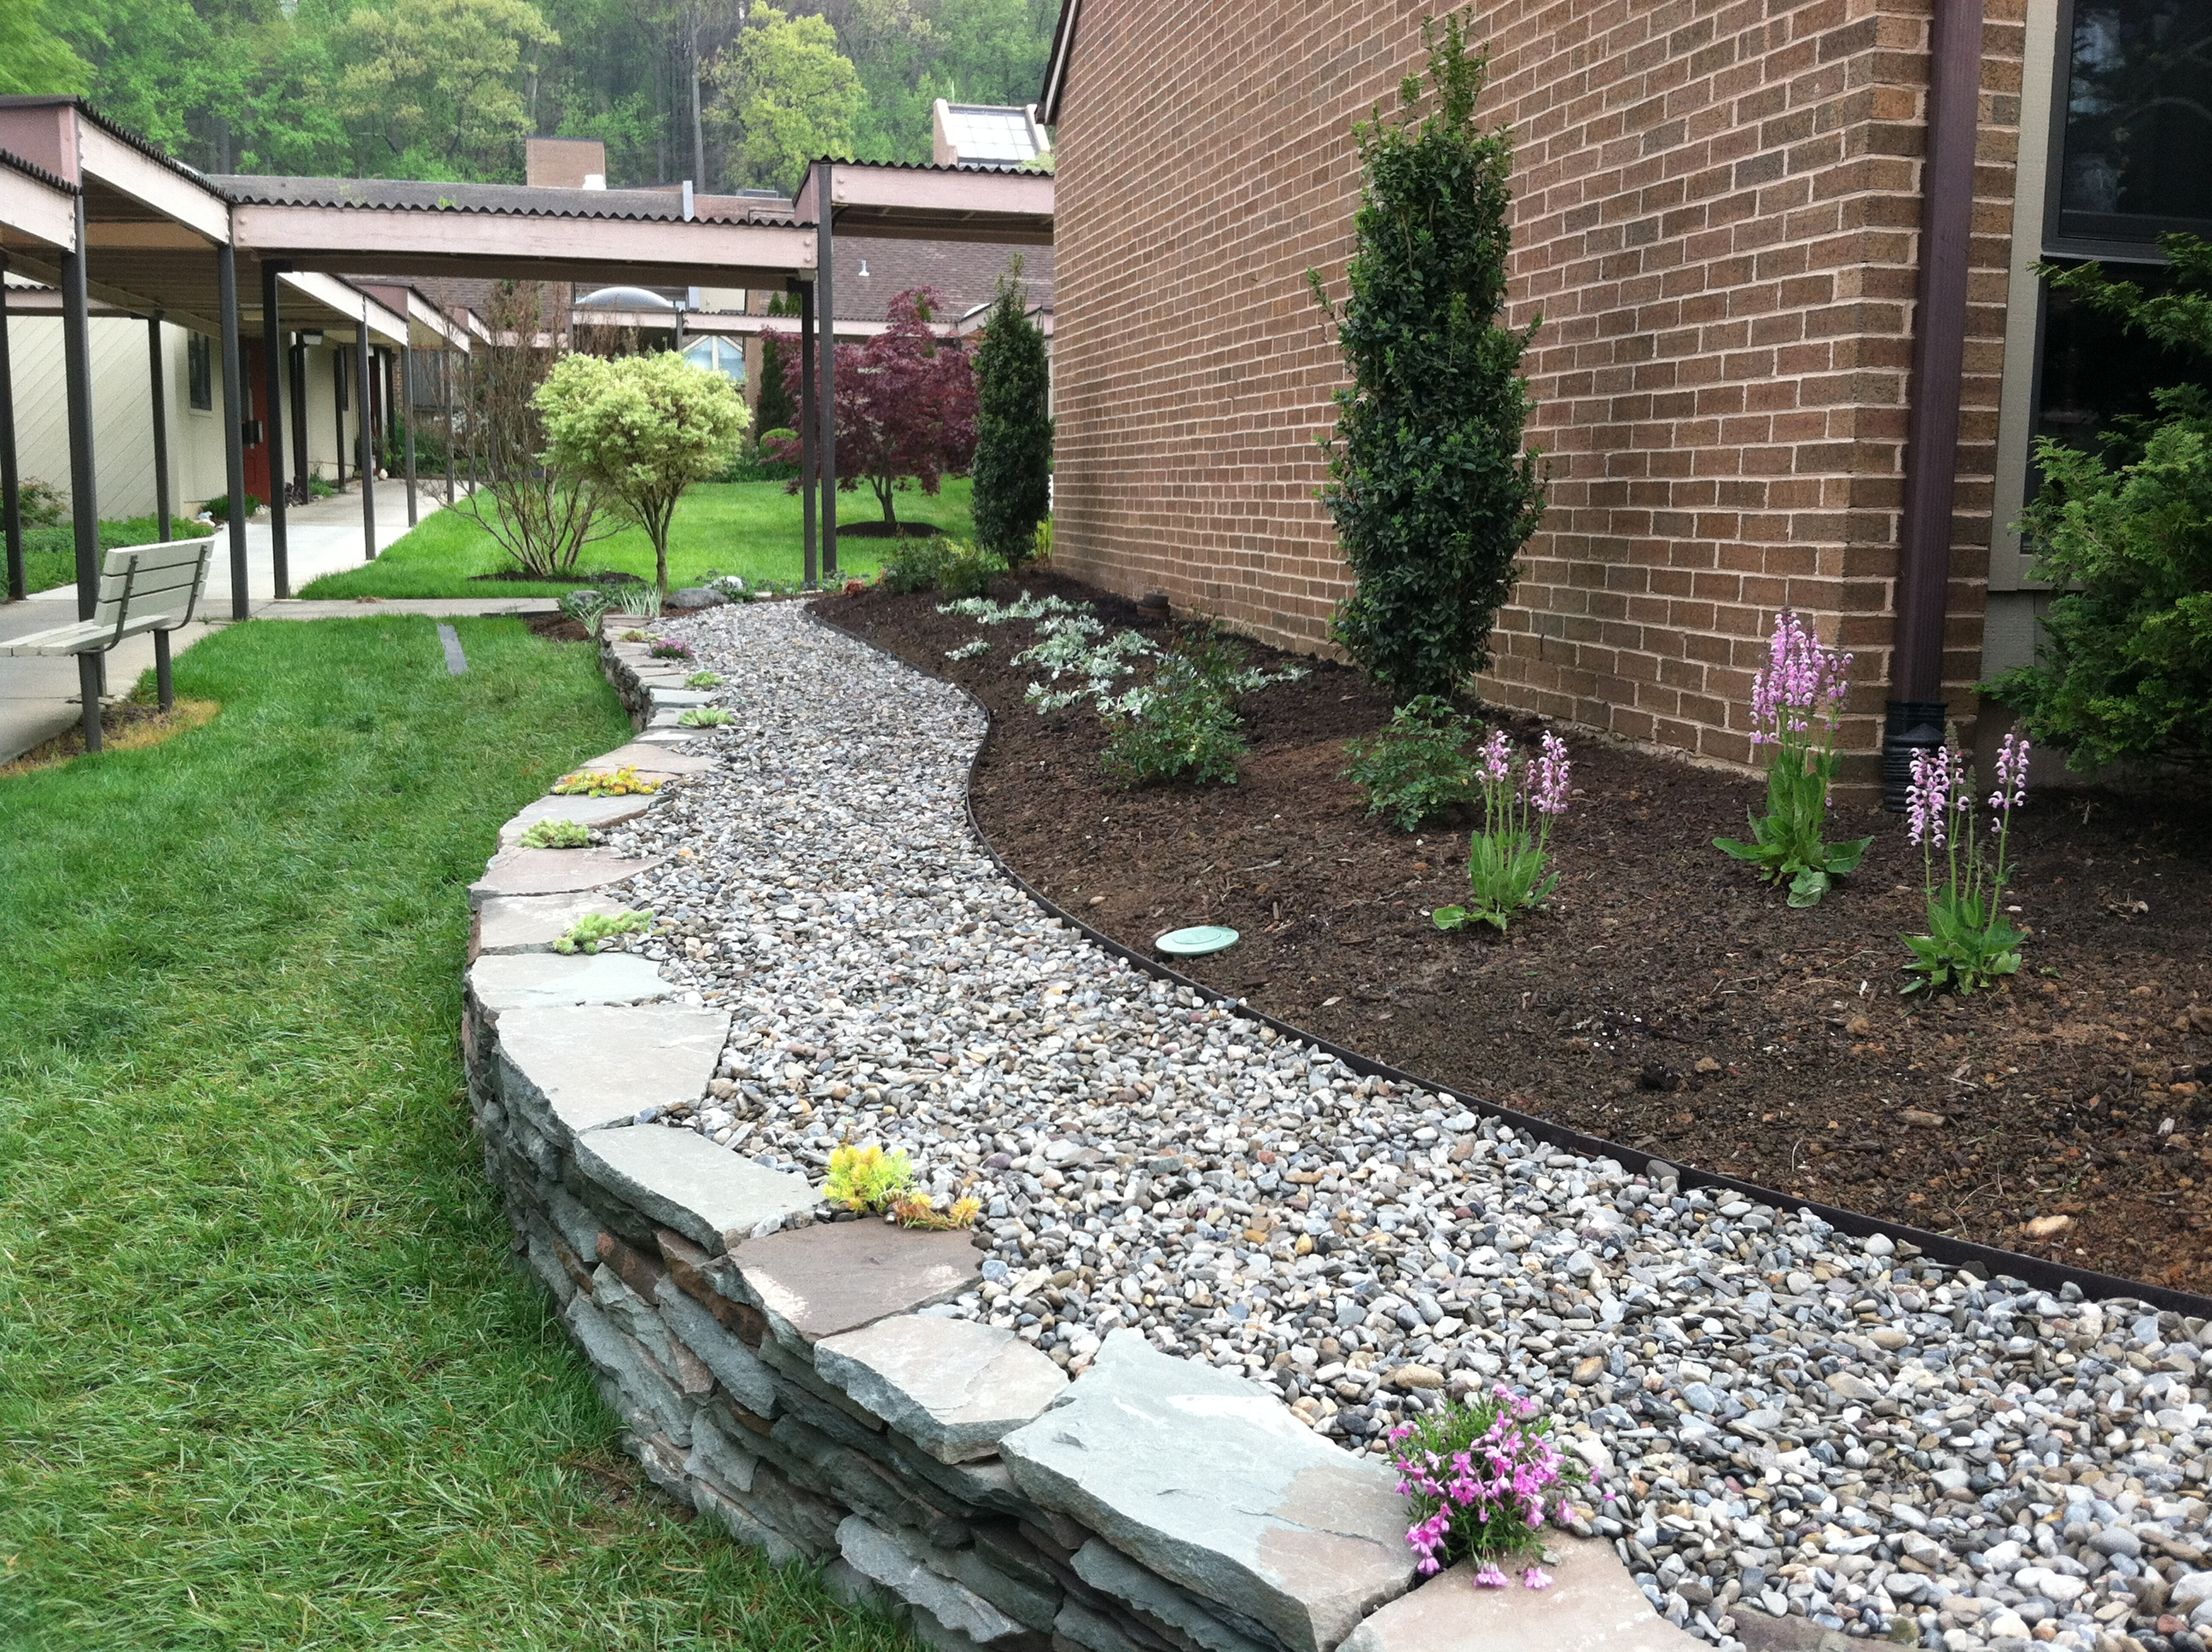 Awesome Garden Landscaping Ideas For The Space Around Your ... on Backyard Landscaping Near Me id=81091